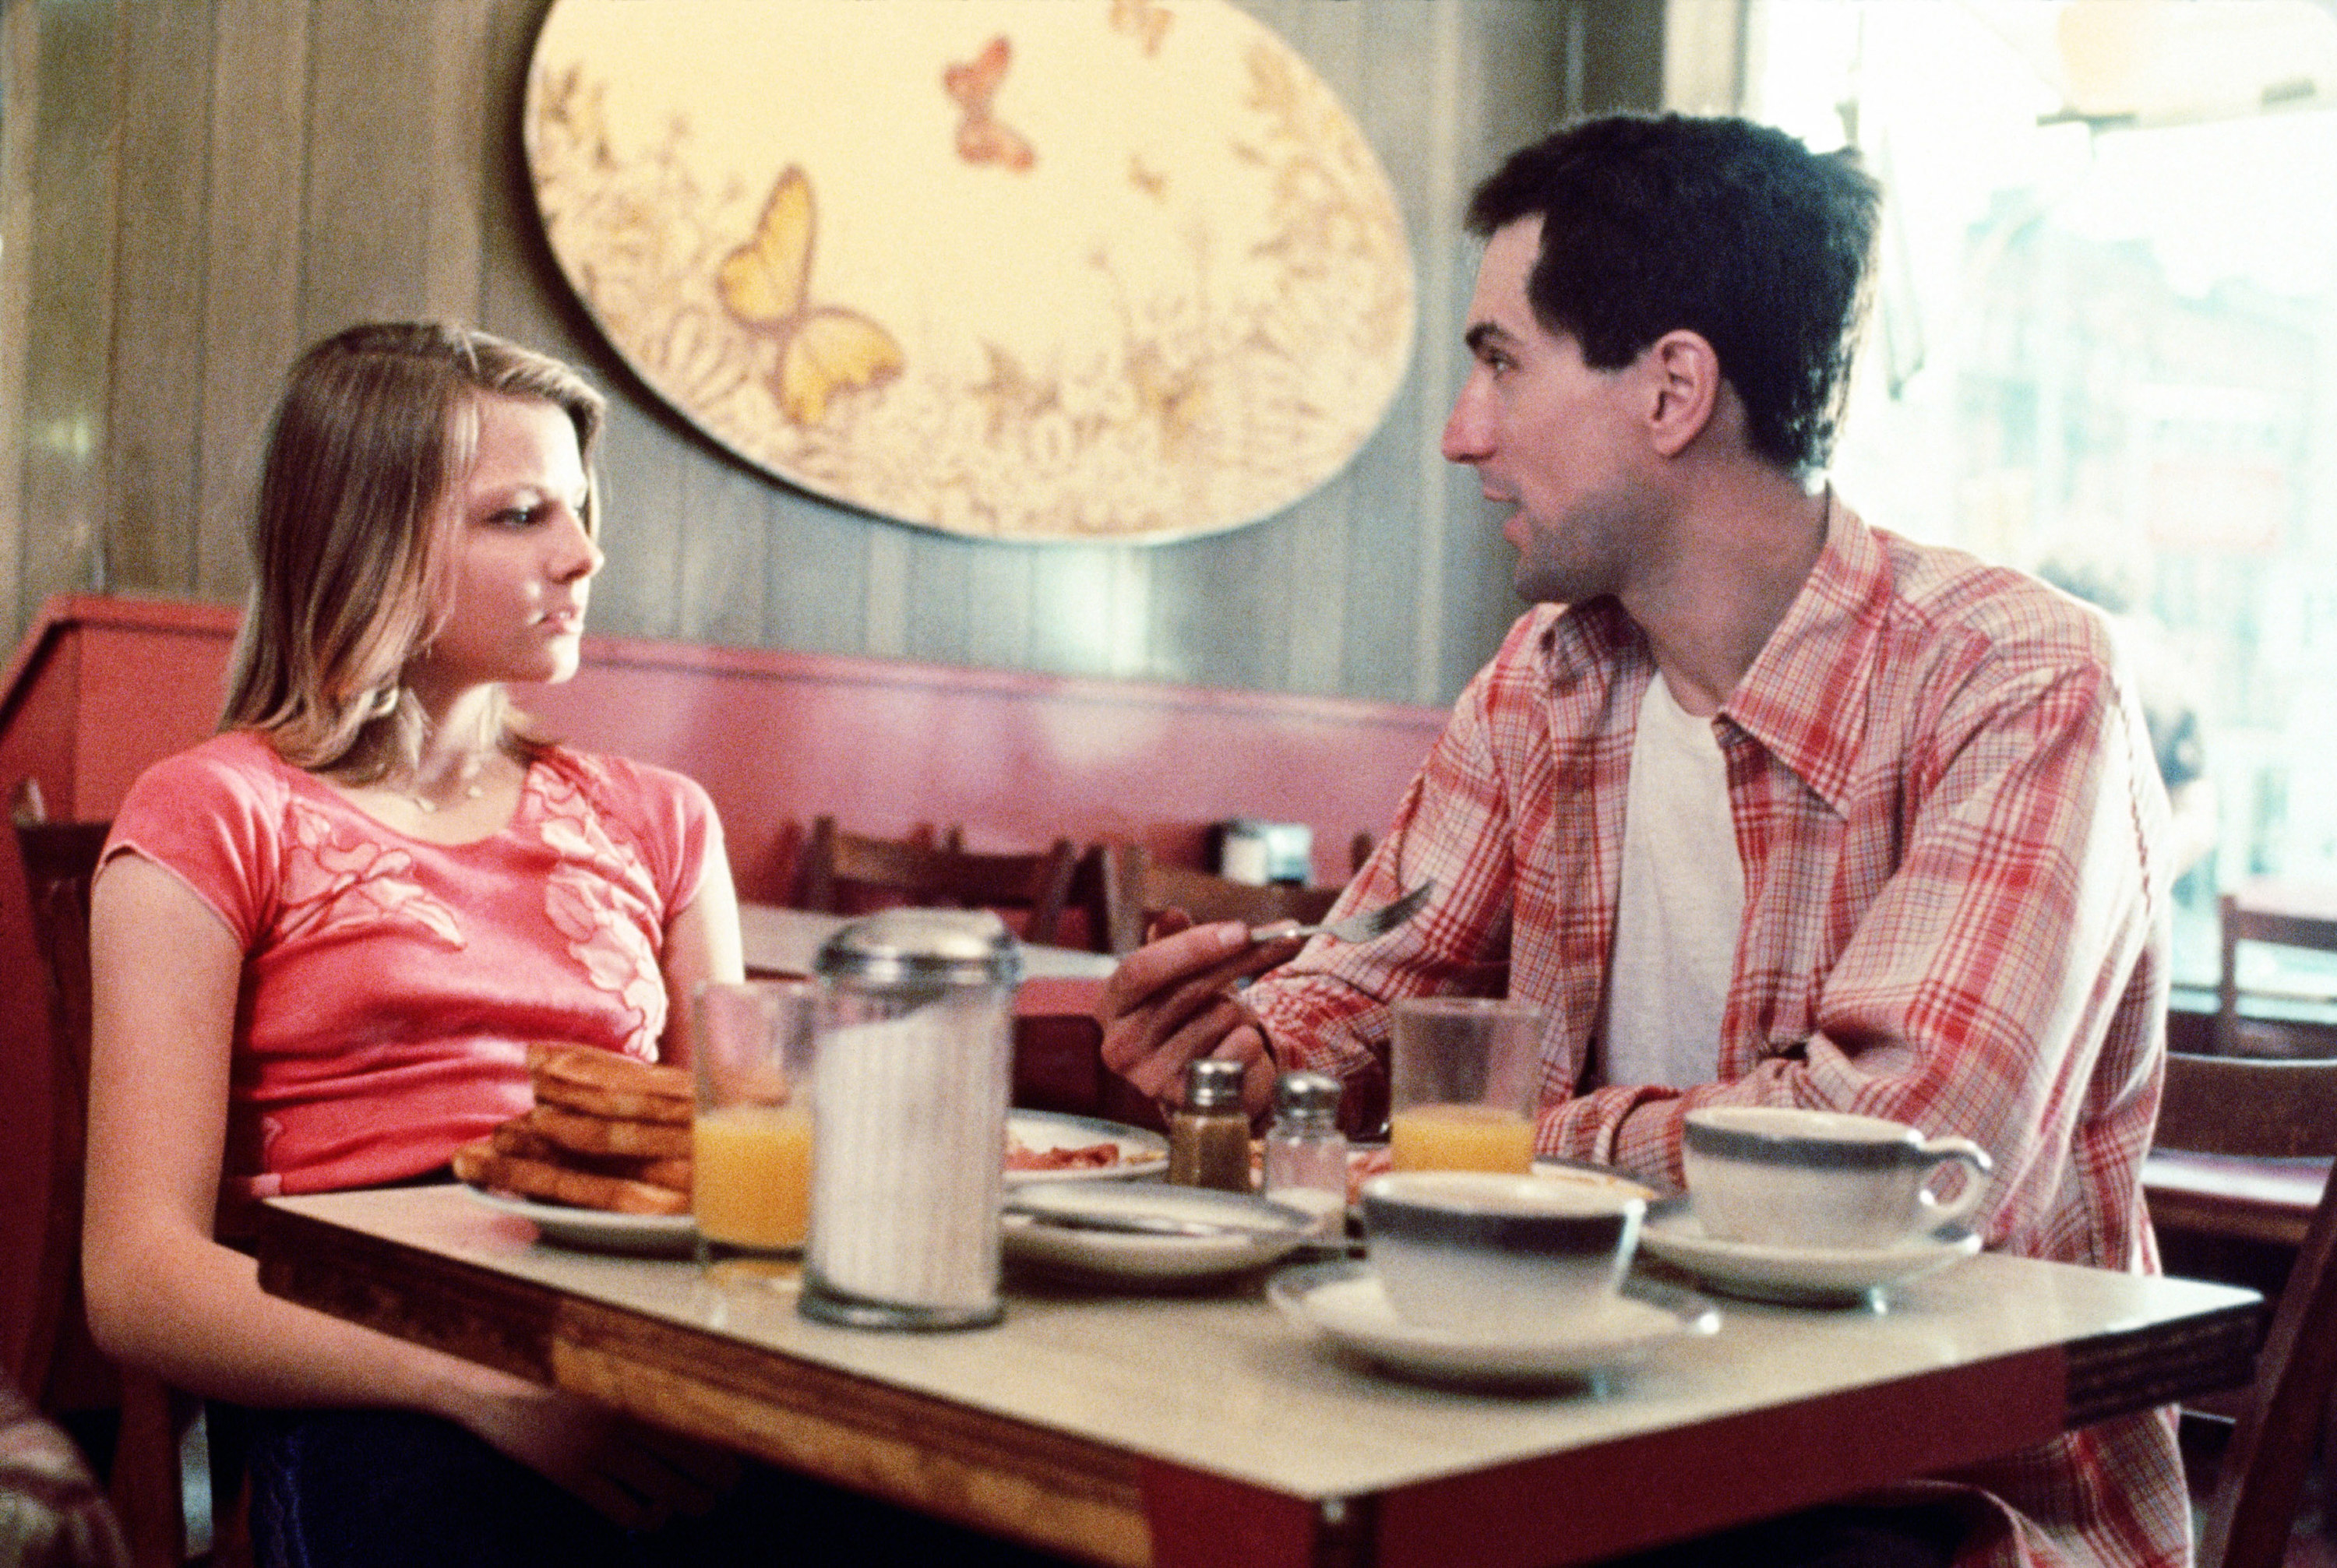 Jodi Foster and Robert De Niro in a cafe in Taxi Driver